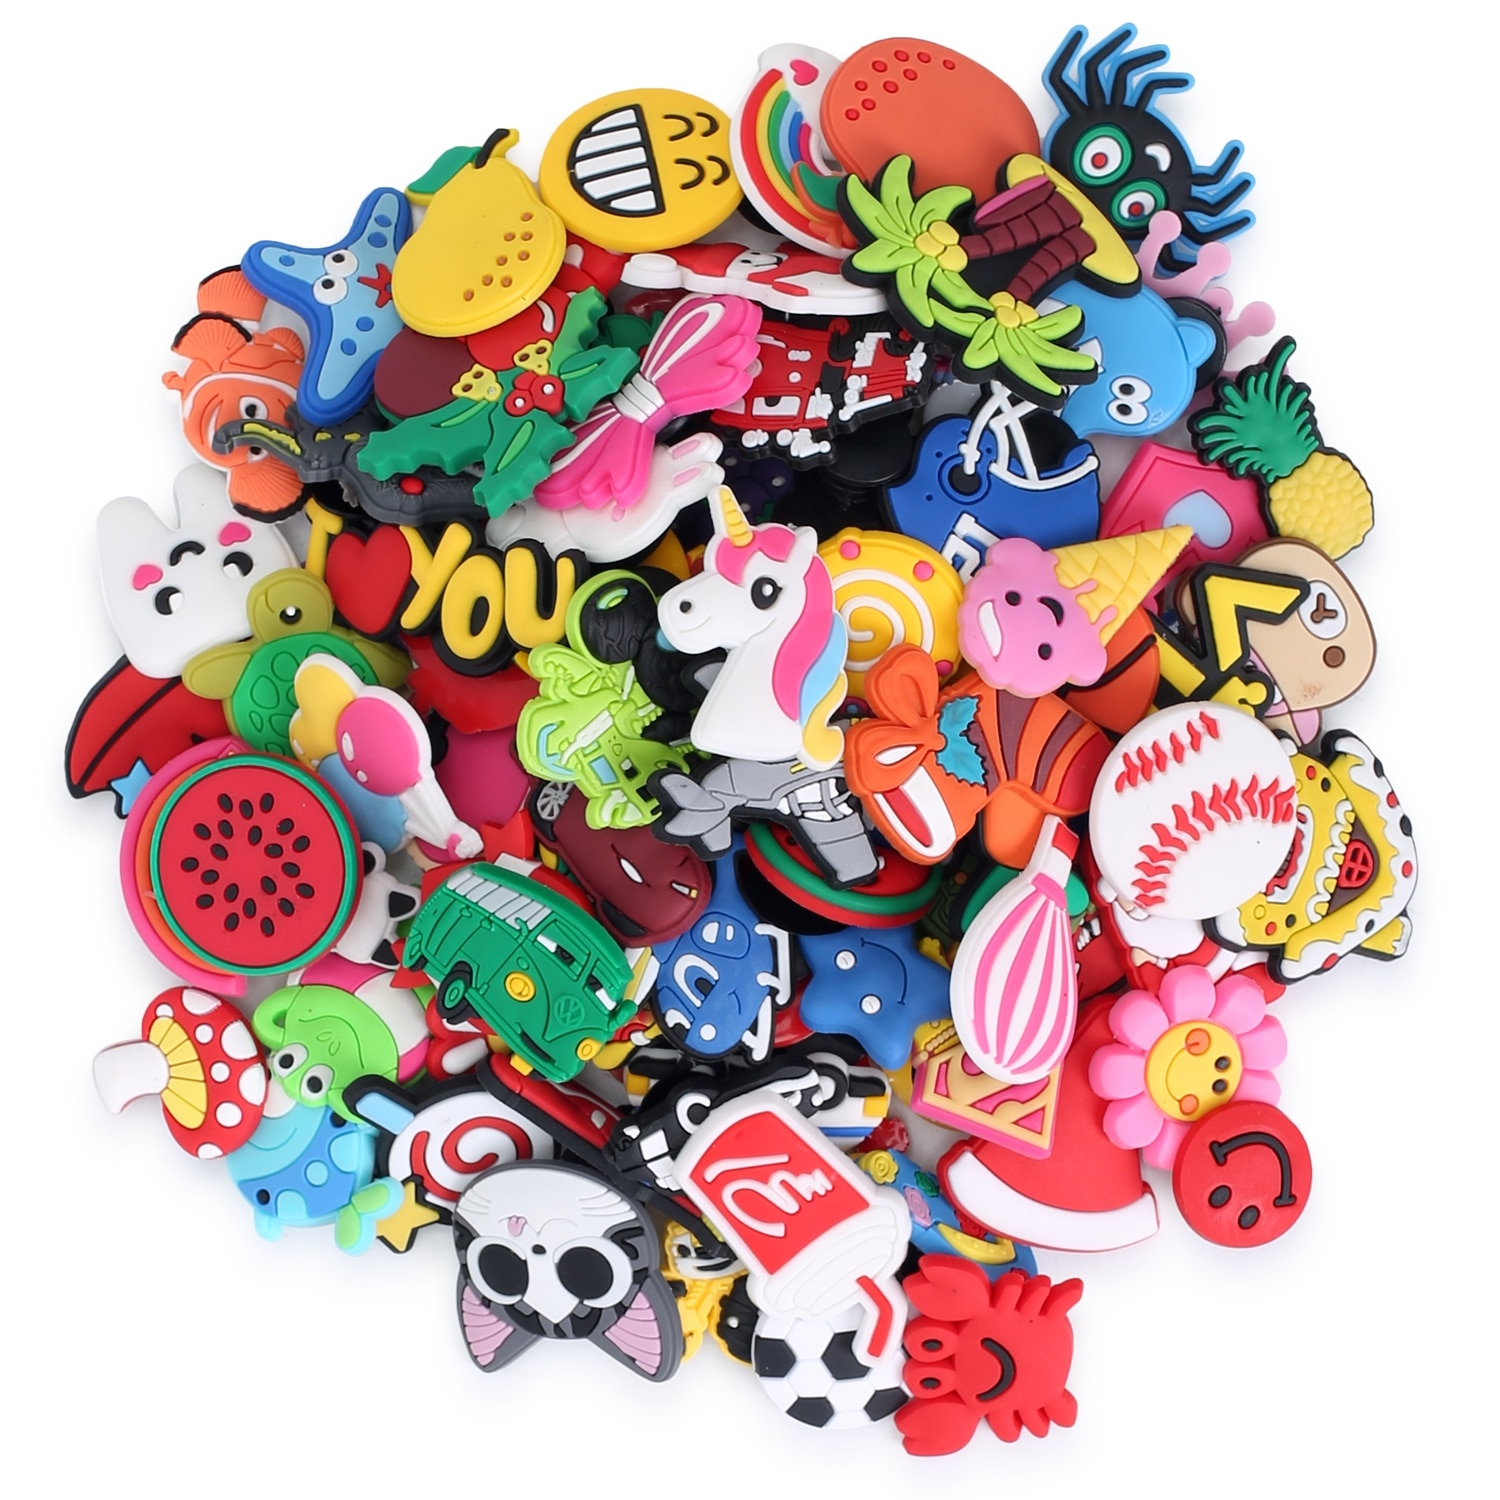 Package mail 1000PCS Hot Cartoon PVC Shoe Charms Accessories Animals Medical Crystal Flower JIBZ fit Croc Bracelets Kids Gift